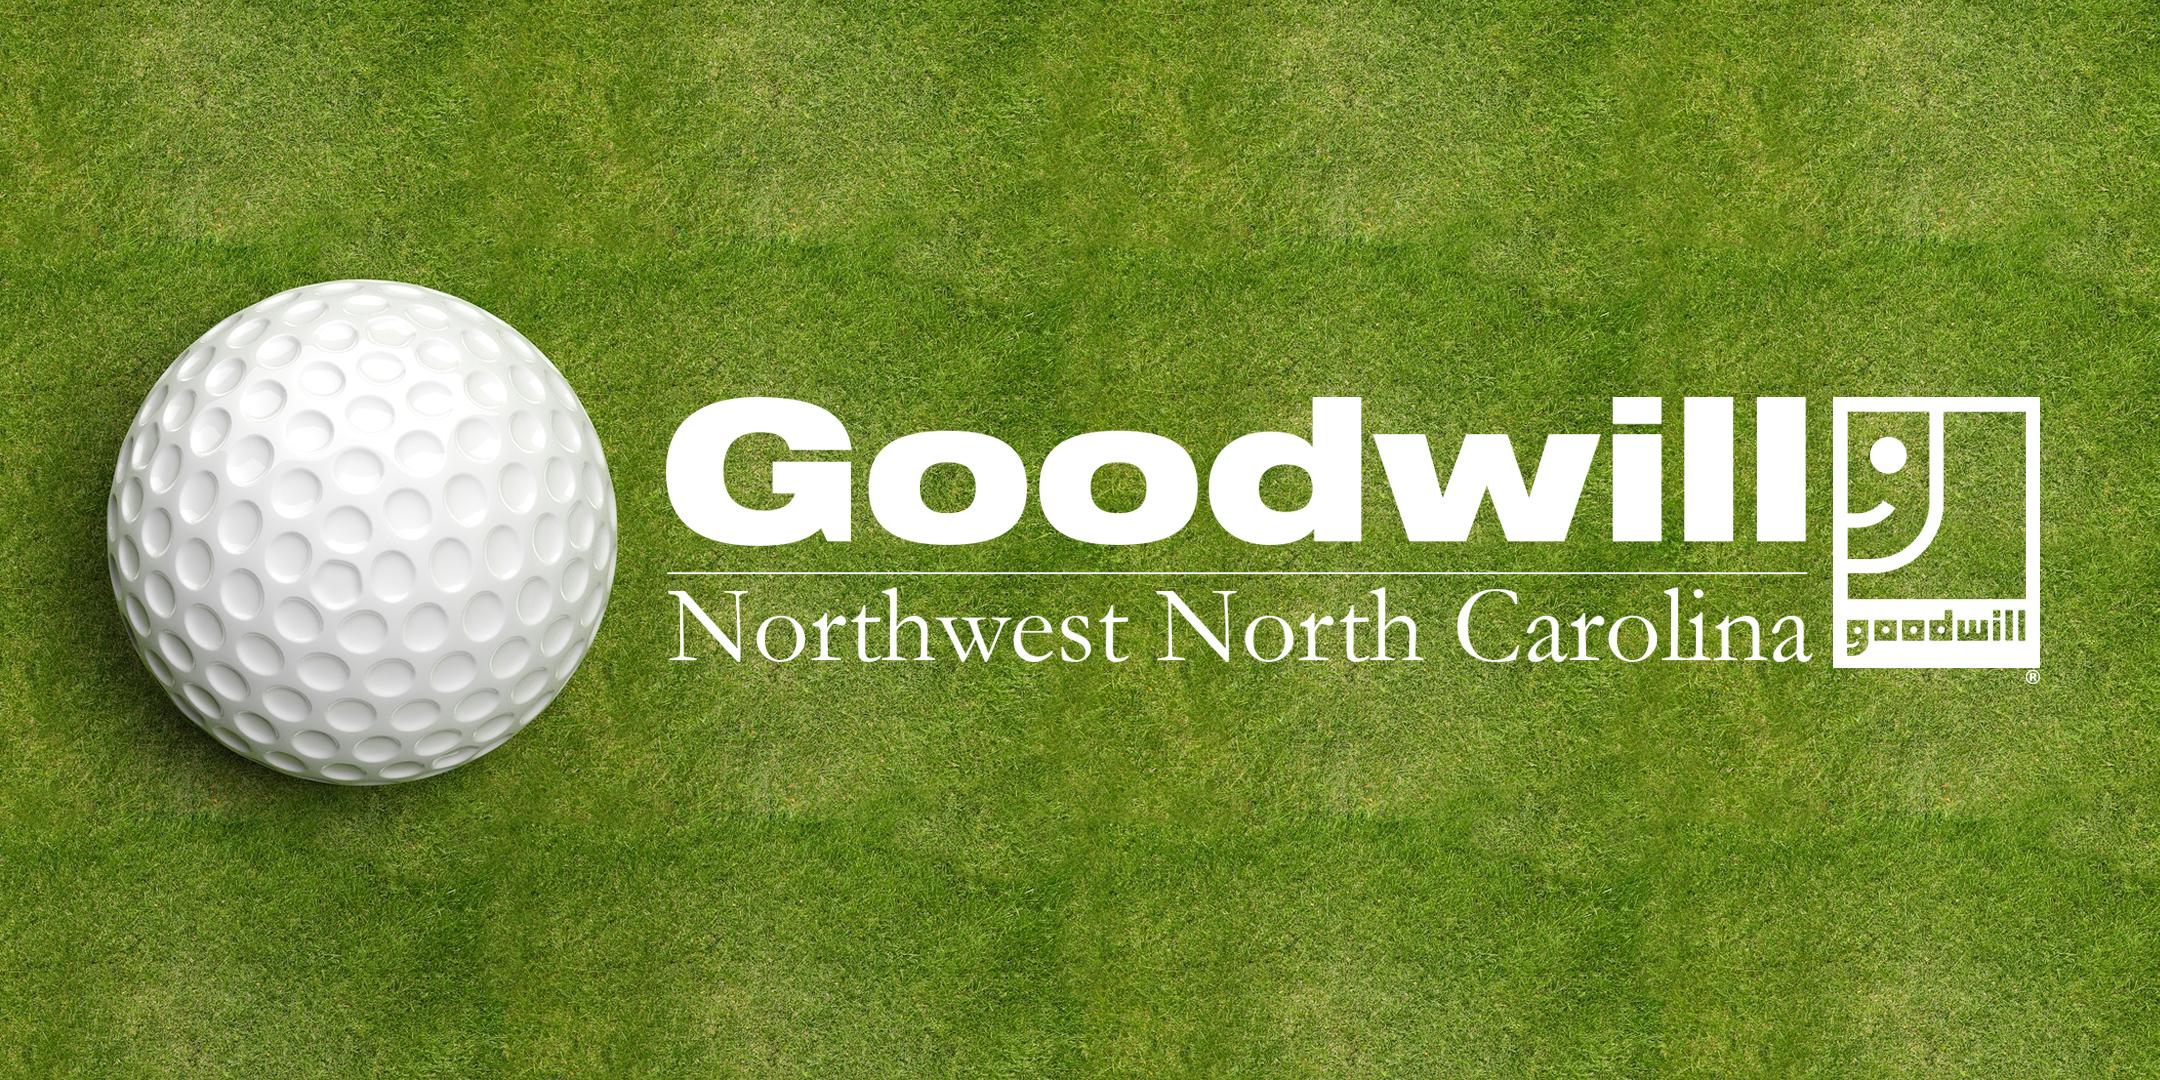 Goodwill Golf Tournament 2020